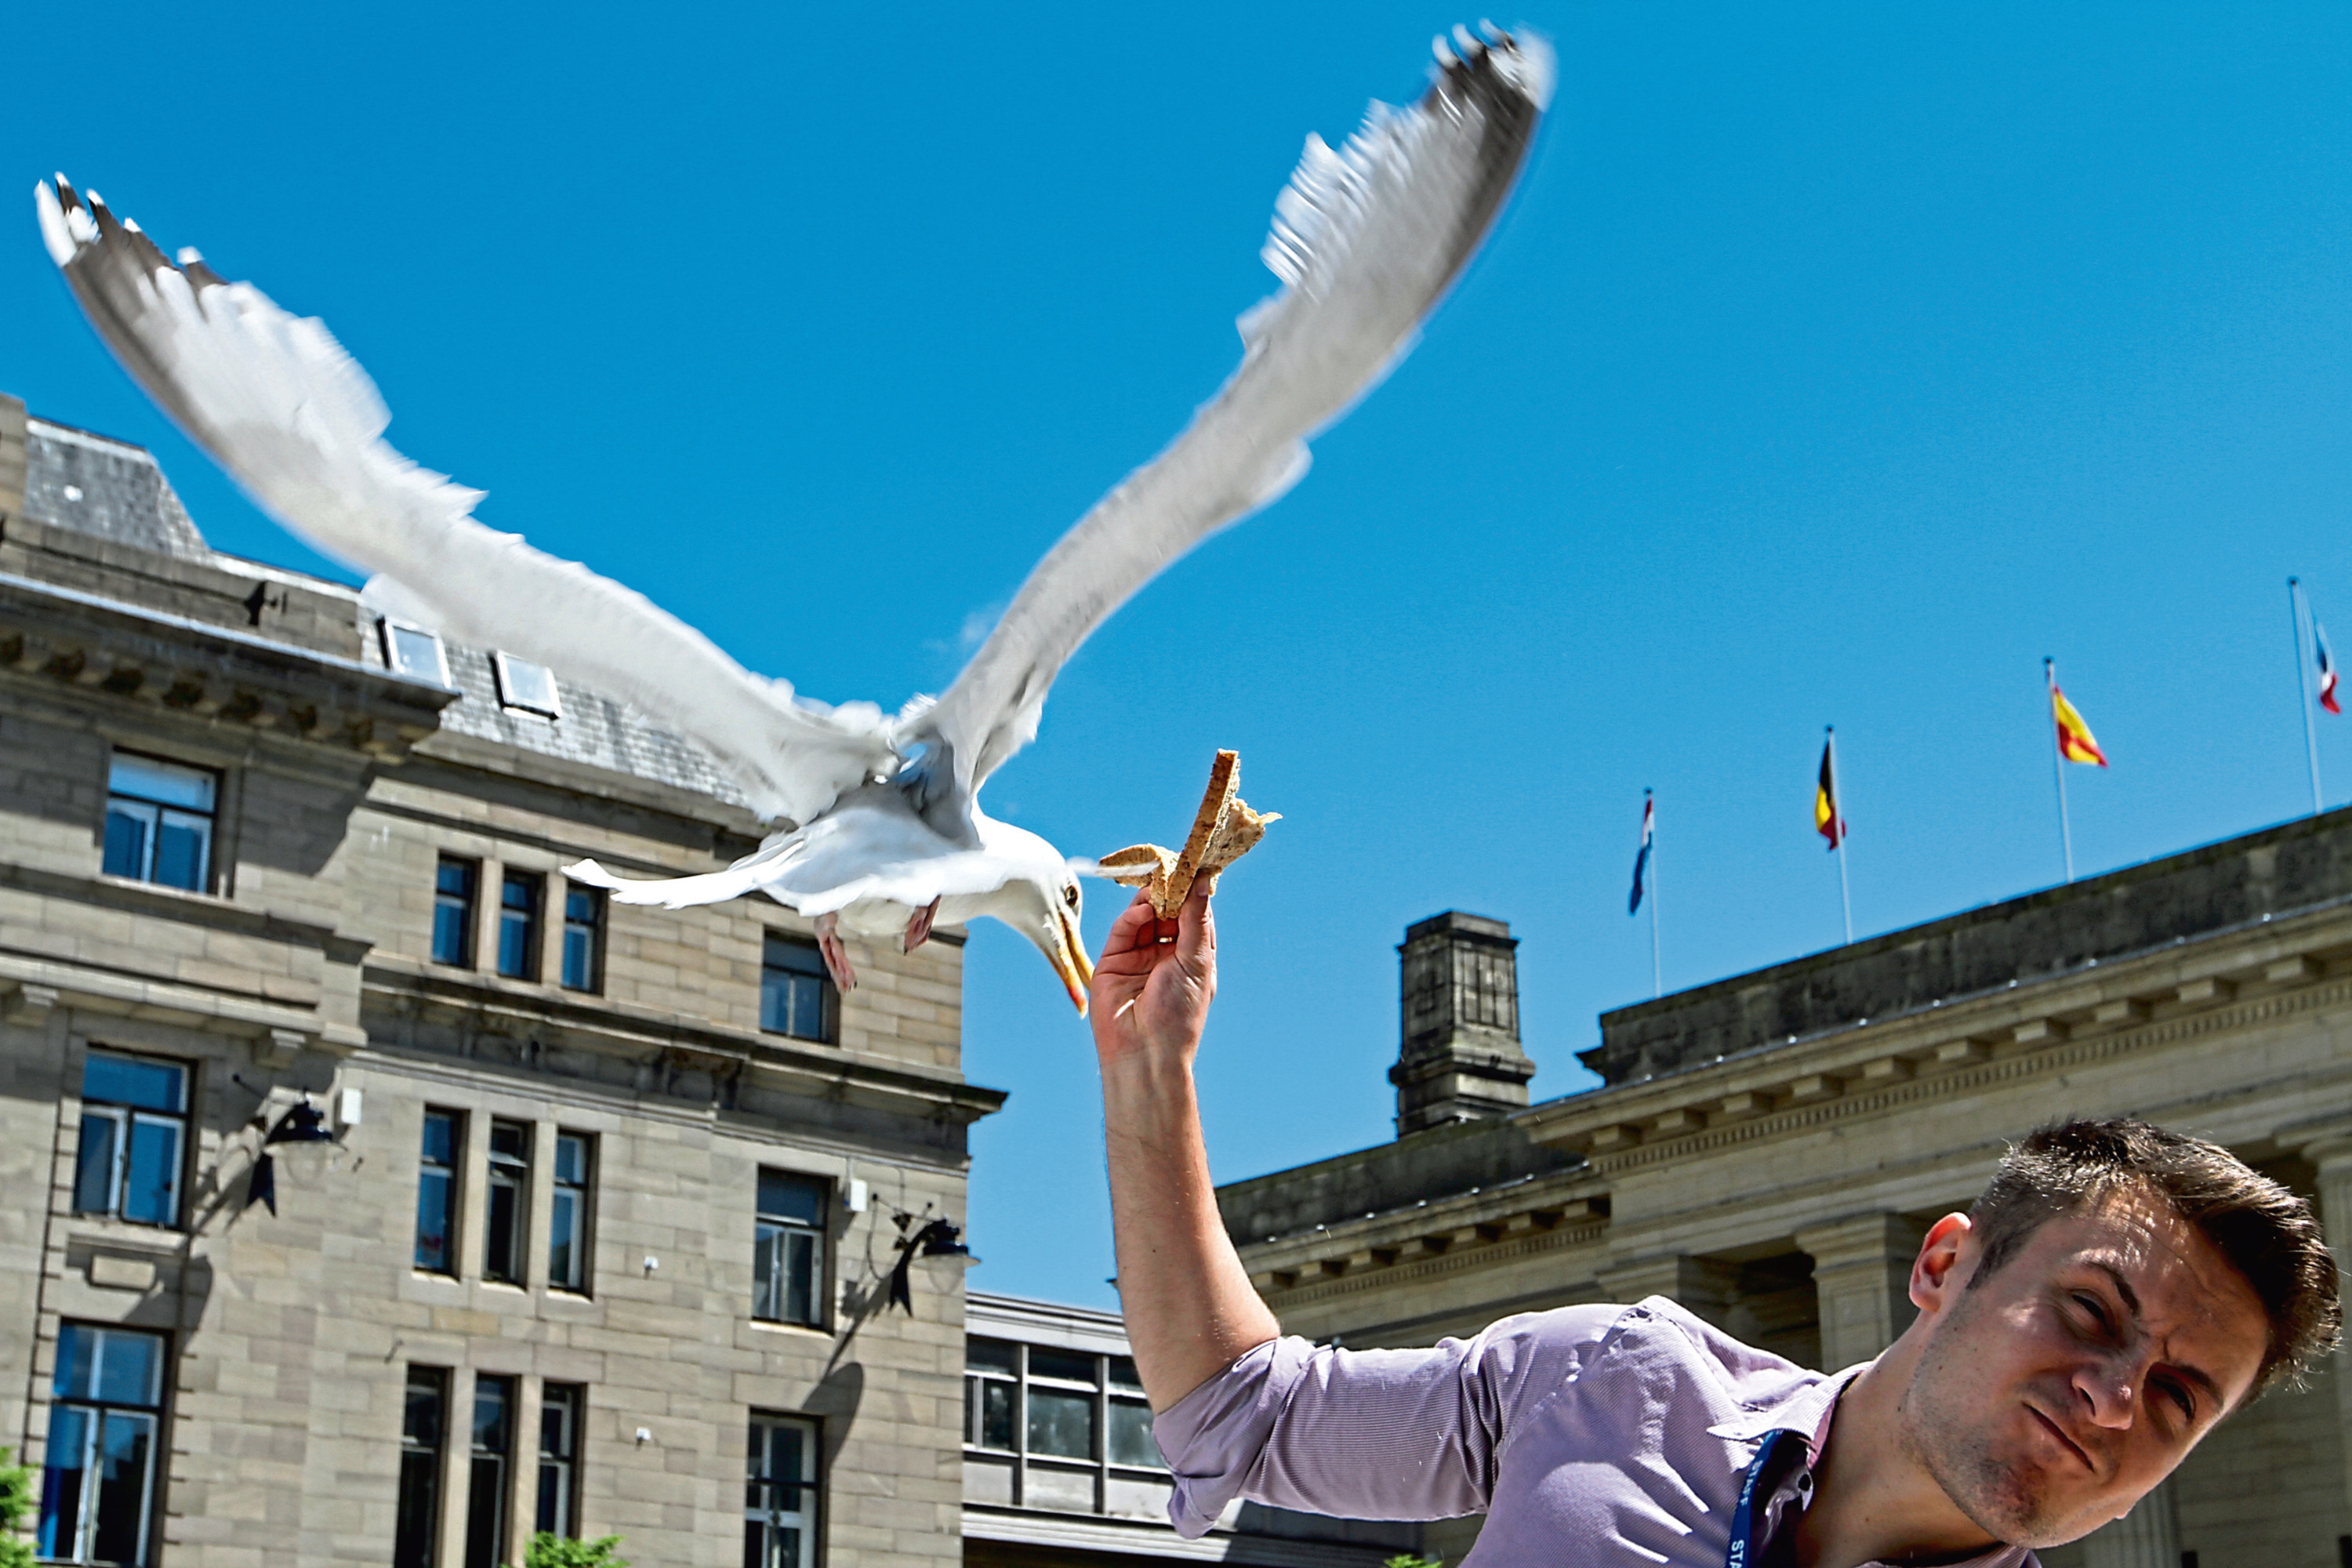 A gull takes food from someone in the city centre.